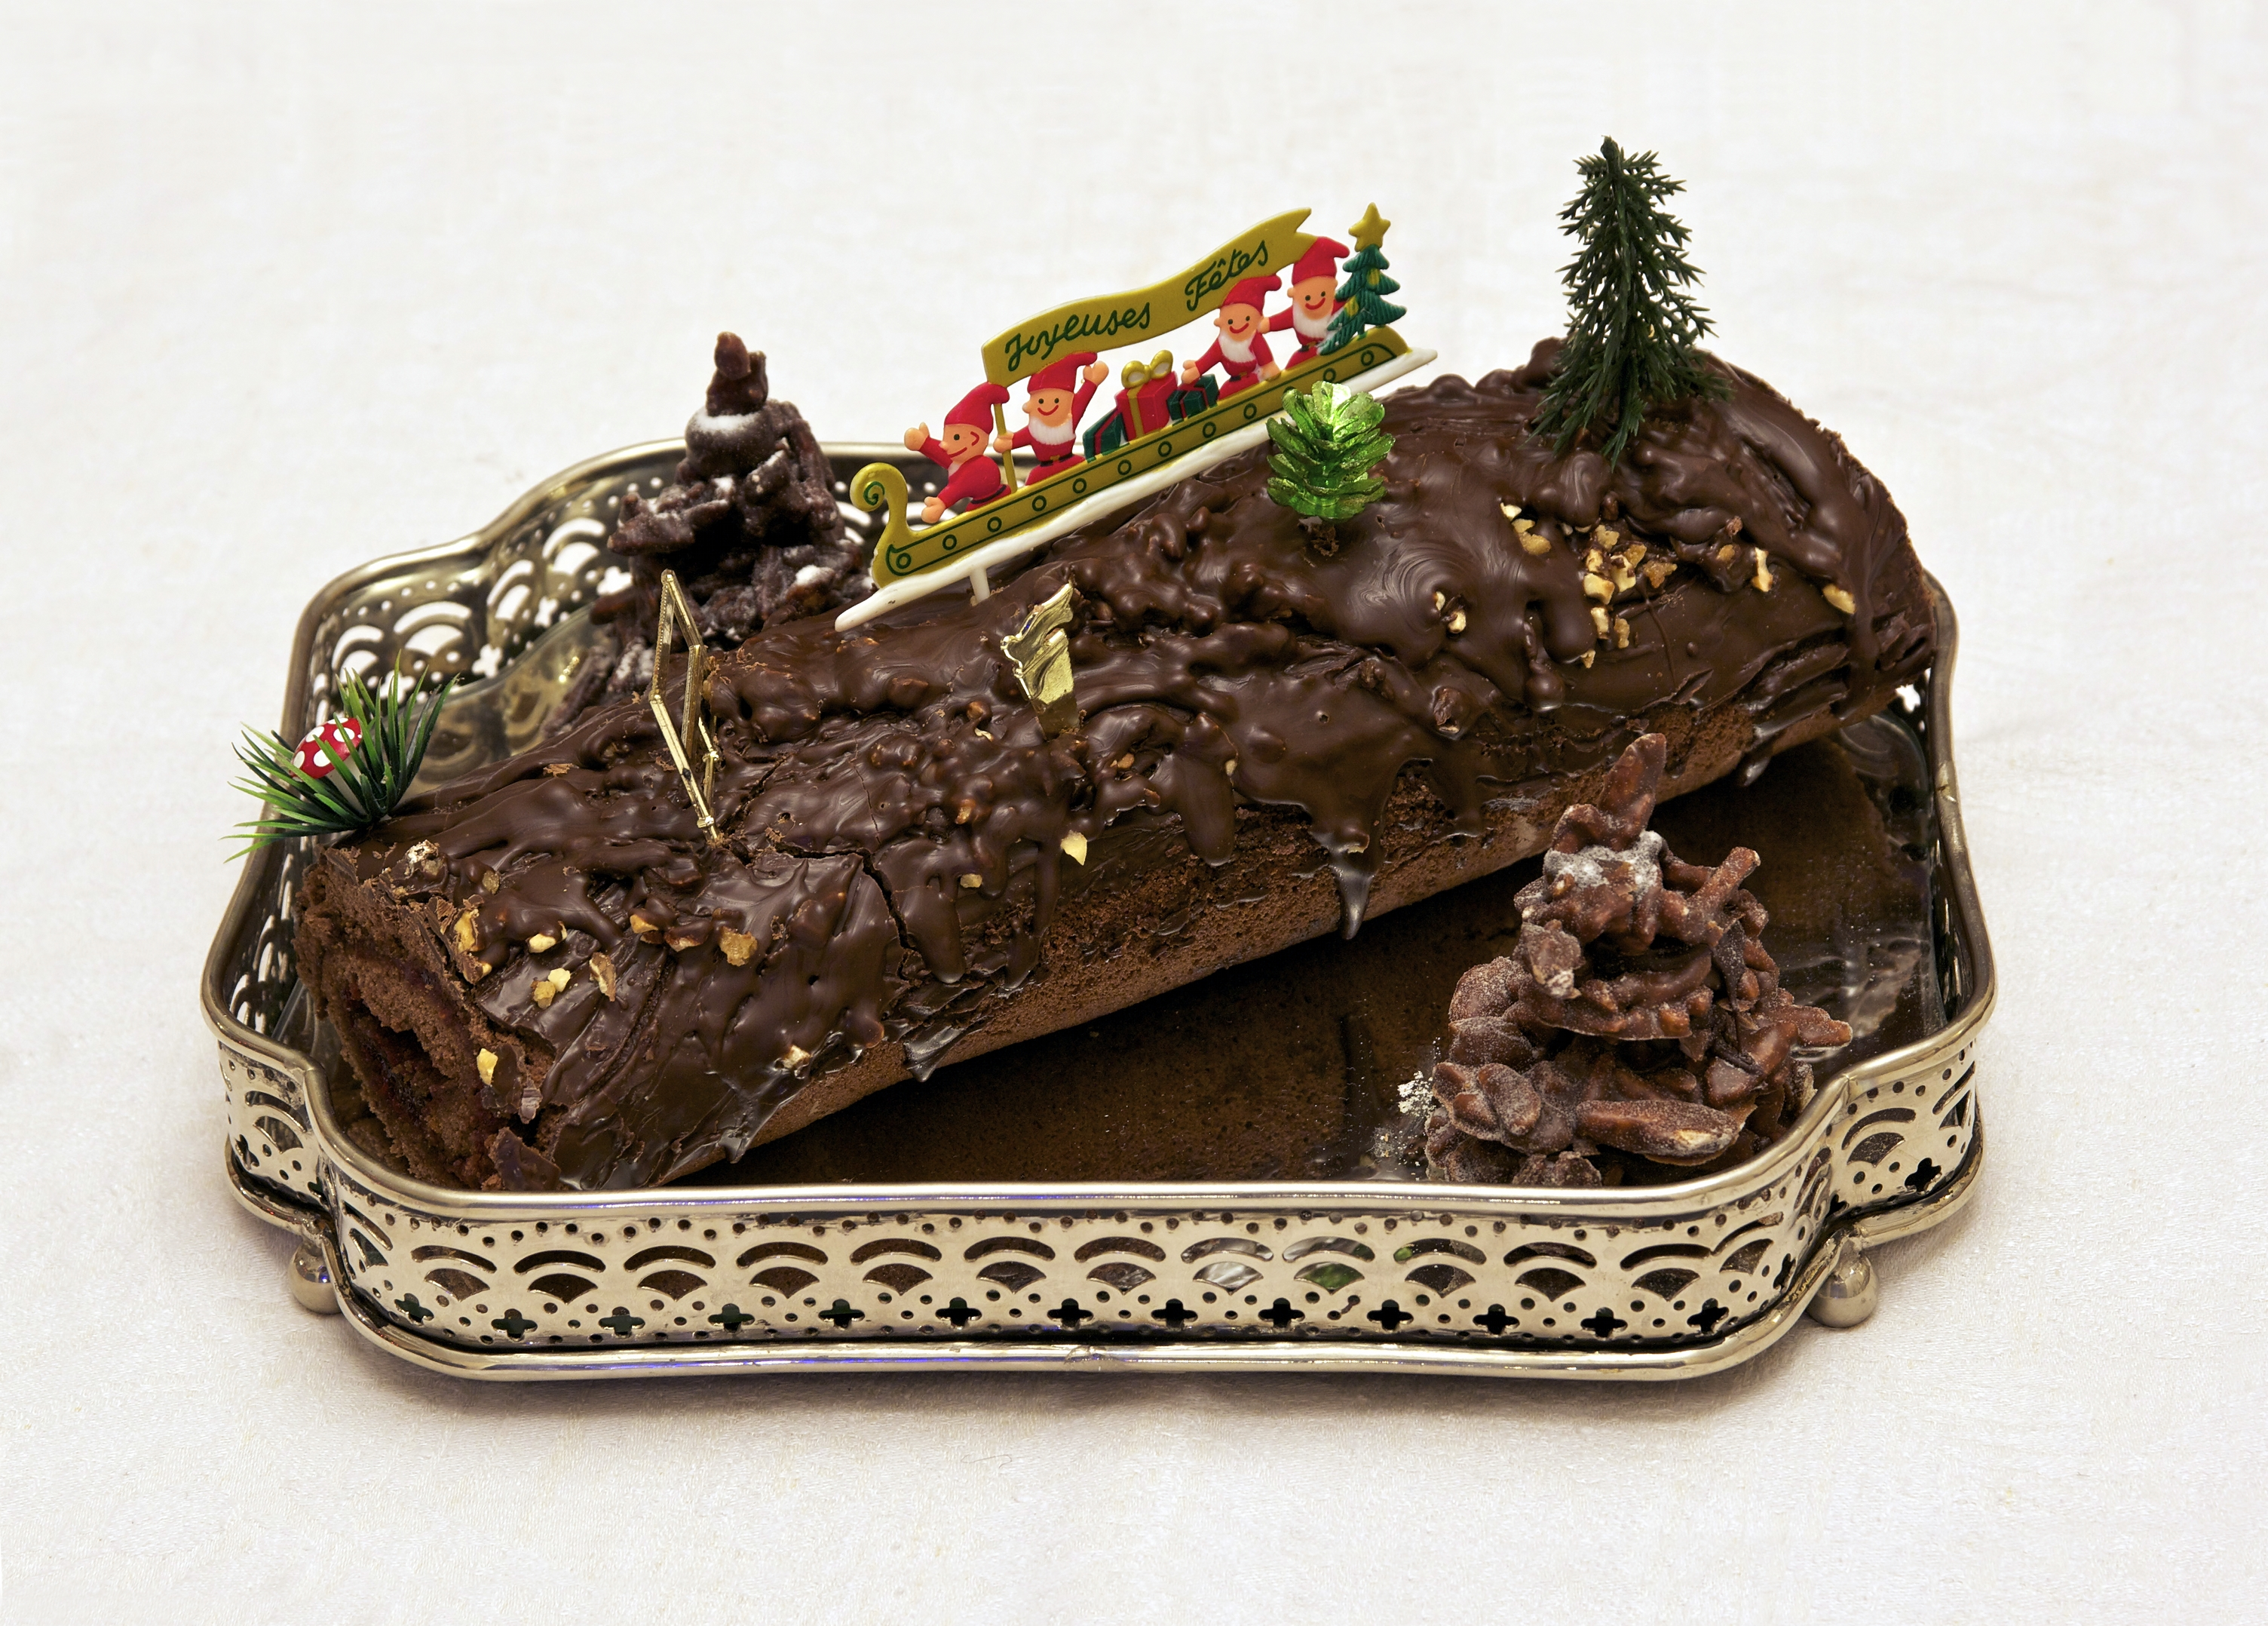 Spanish recipes: Christmas log